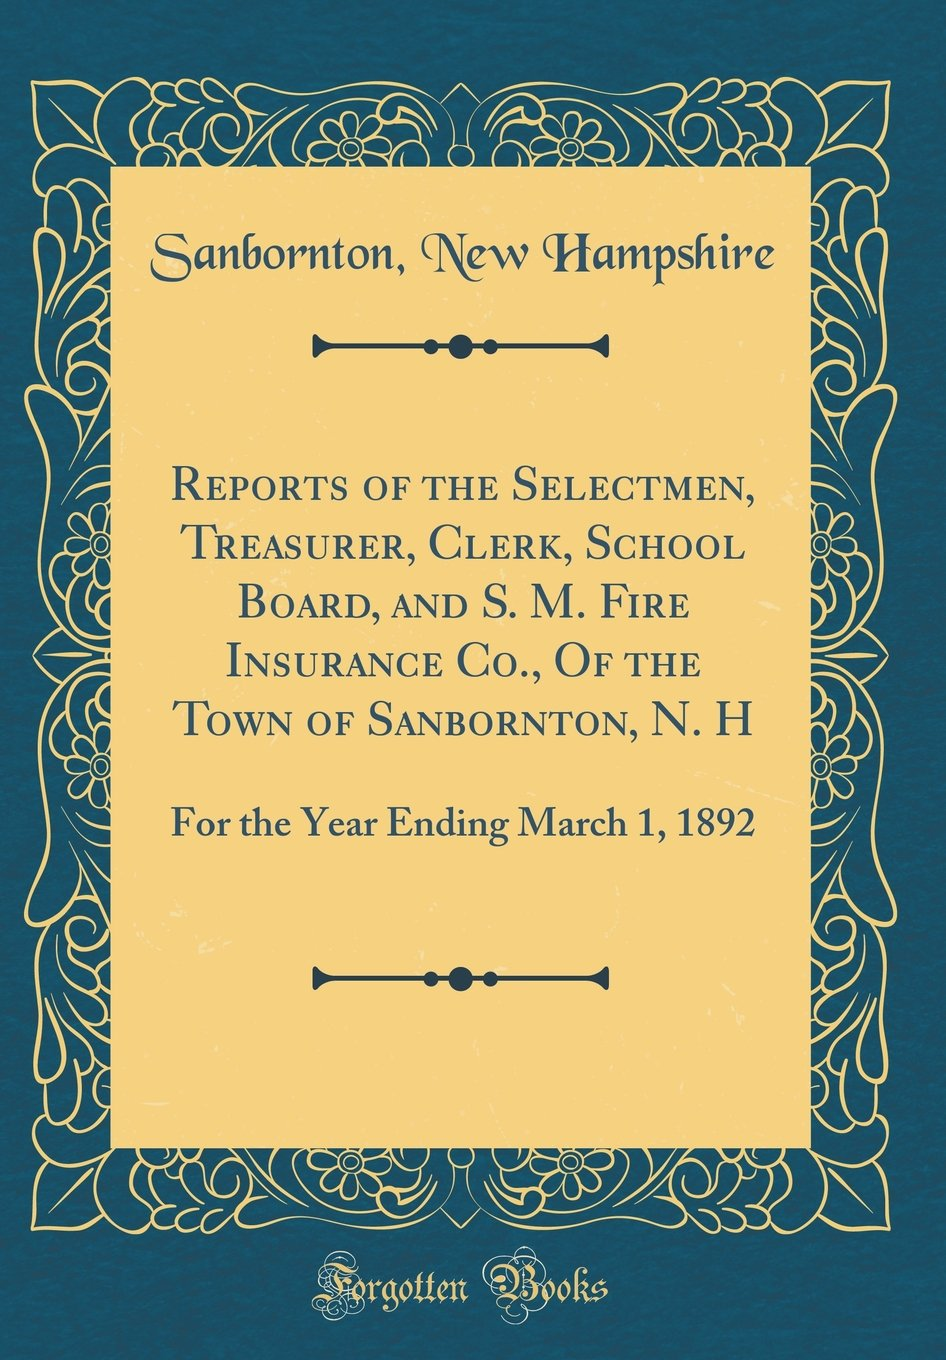 Reports of the Selectmen, Treasurer, Clerk, School Board, and S. M. Fire Insurance Co., Of the Town of Sanbornton, N. H: For the Year Ending March 1, 1892 (Classic Reprint) Text fb2 ebook